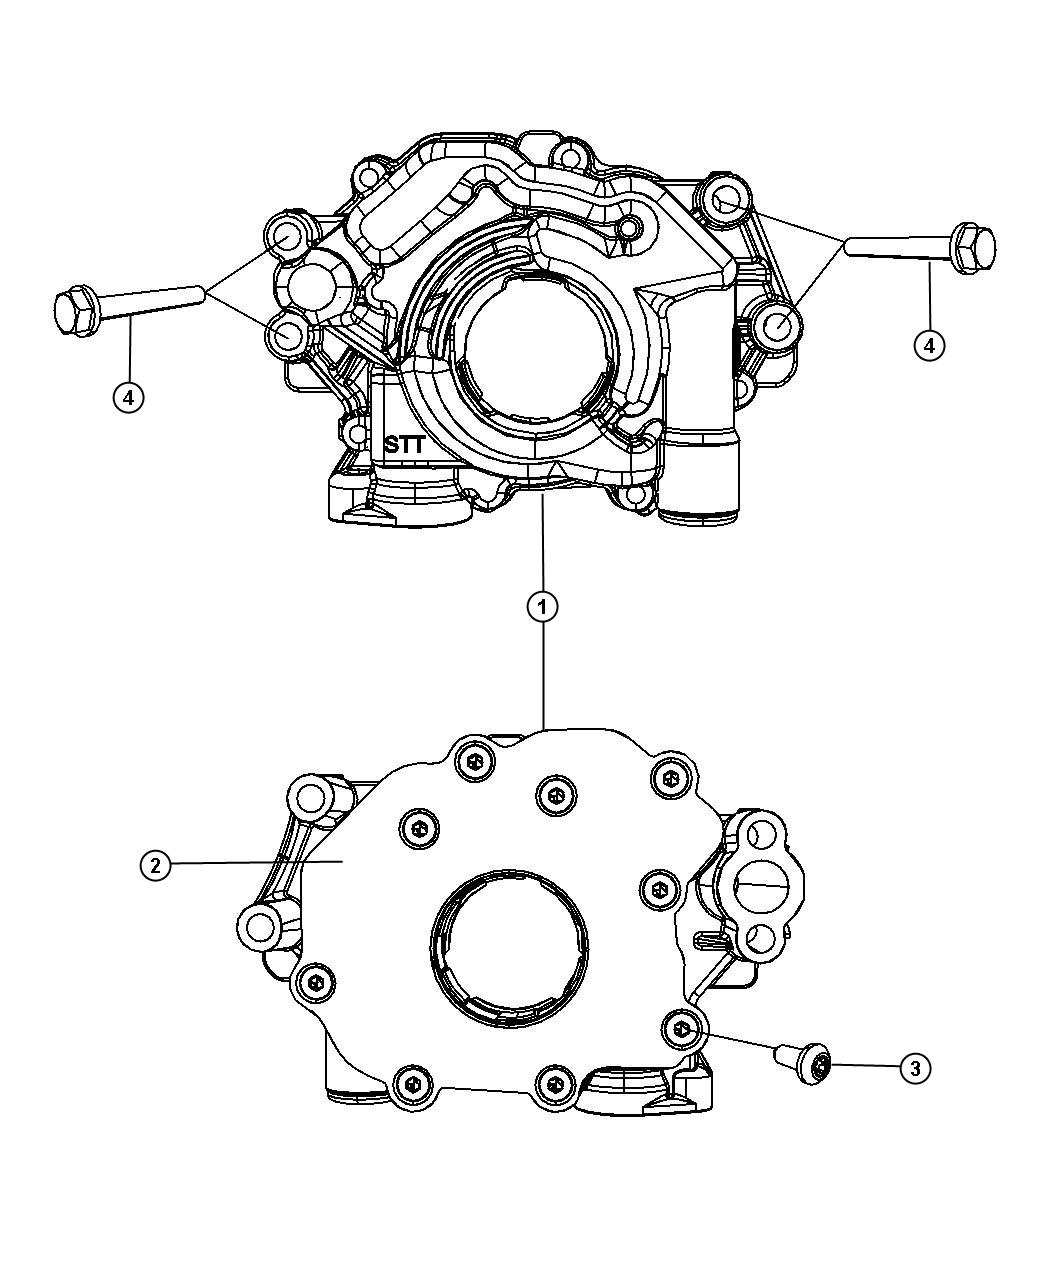 Dodge Ram Used For Bolt And Coned Washer Hex Head